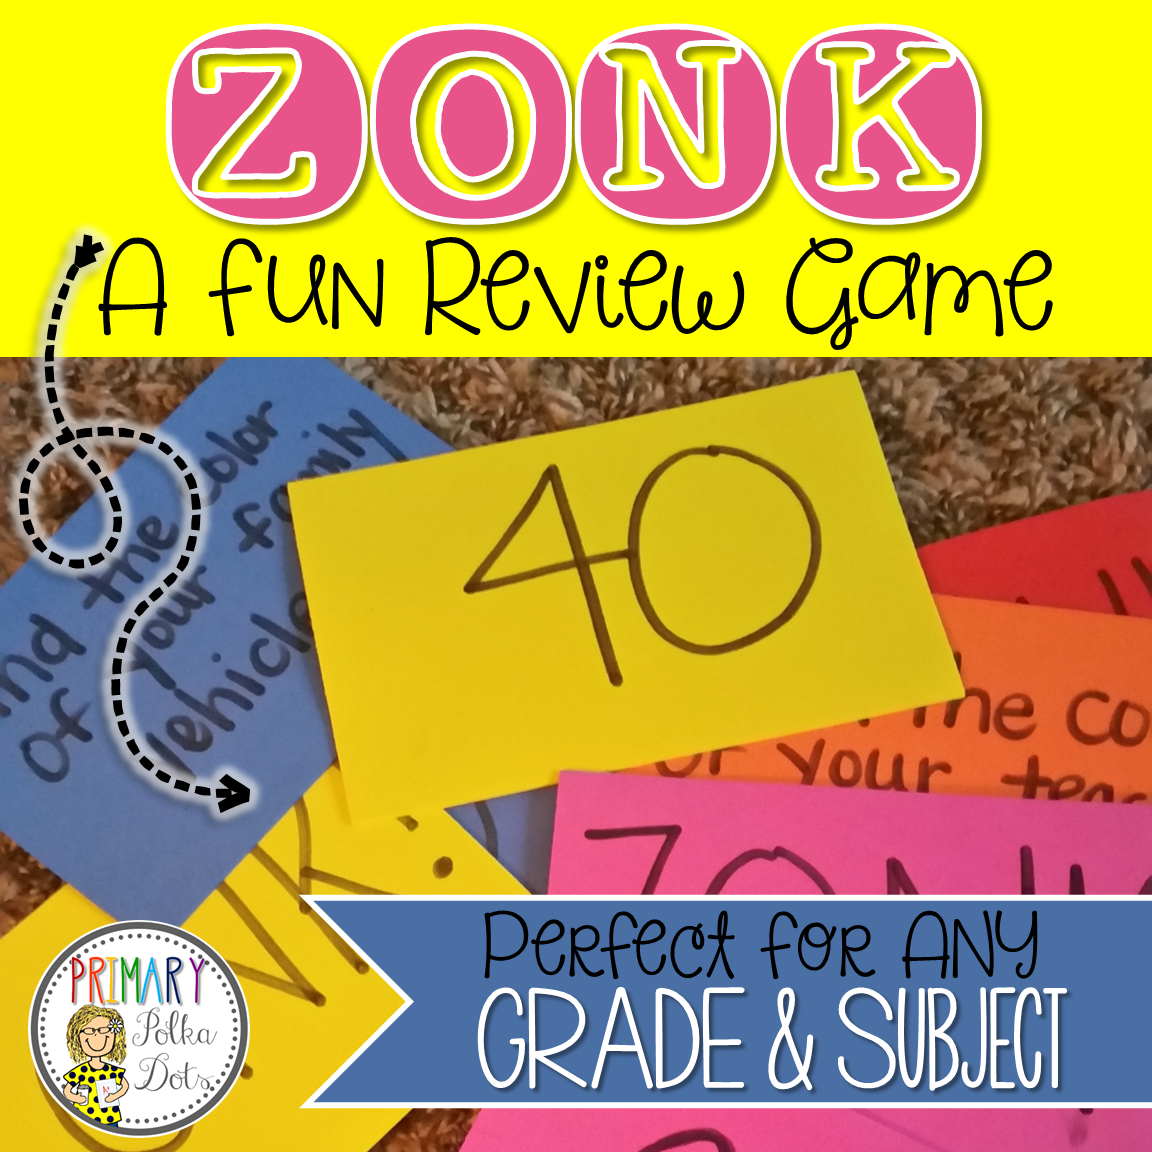 Primary Polka Dots: ZONK! {A Fun Review Game}